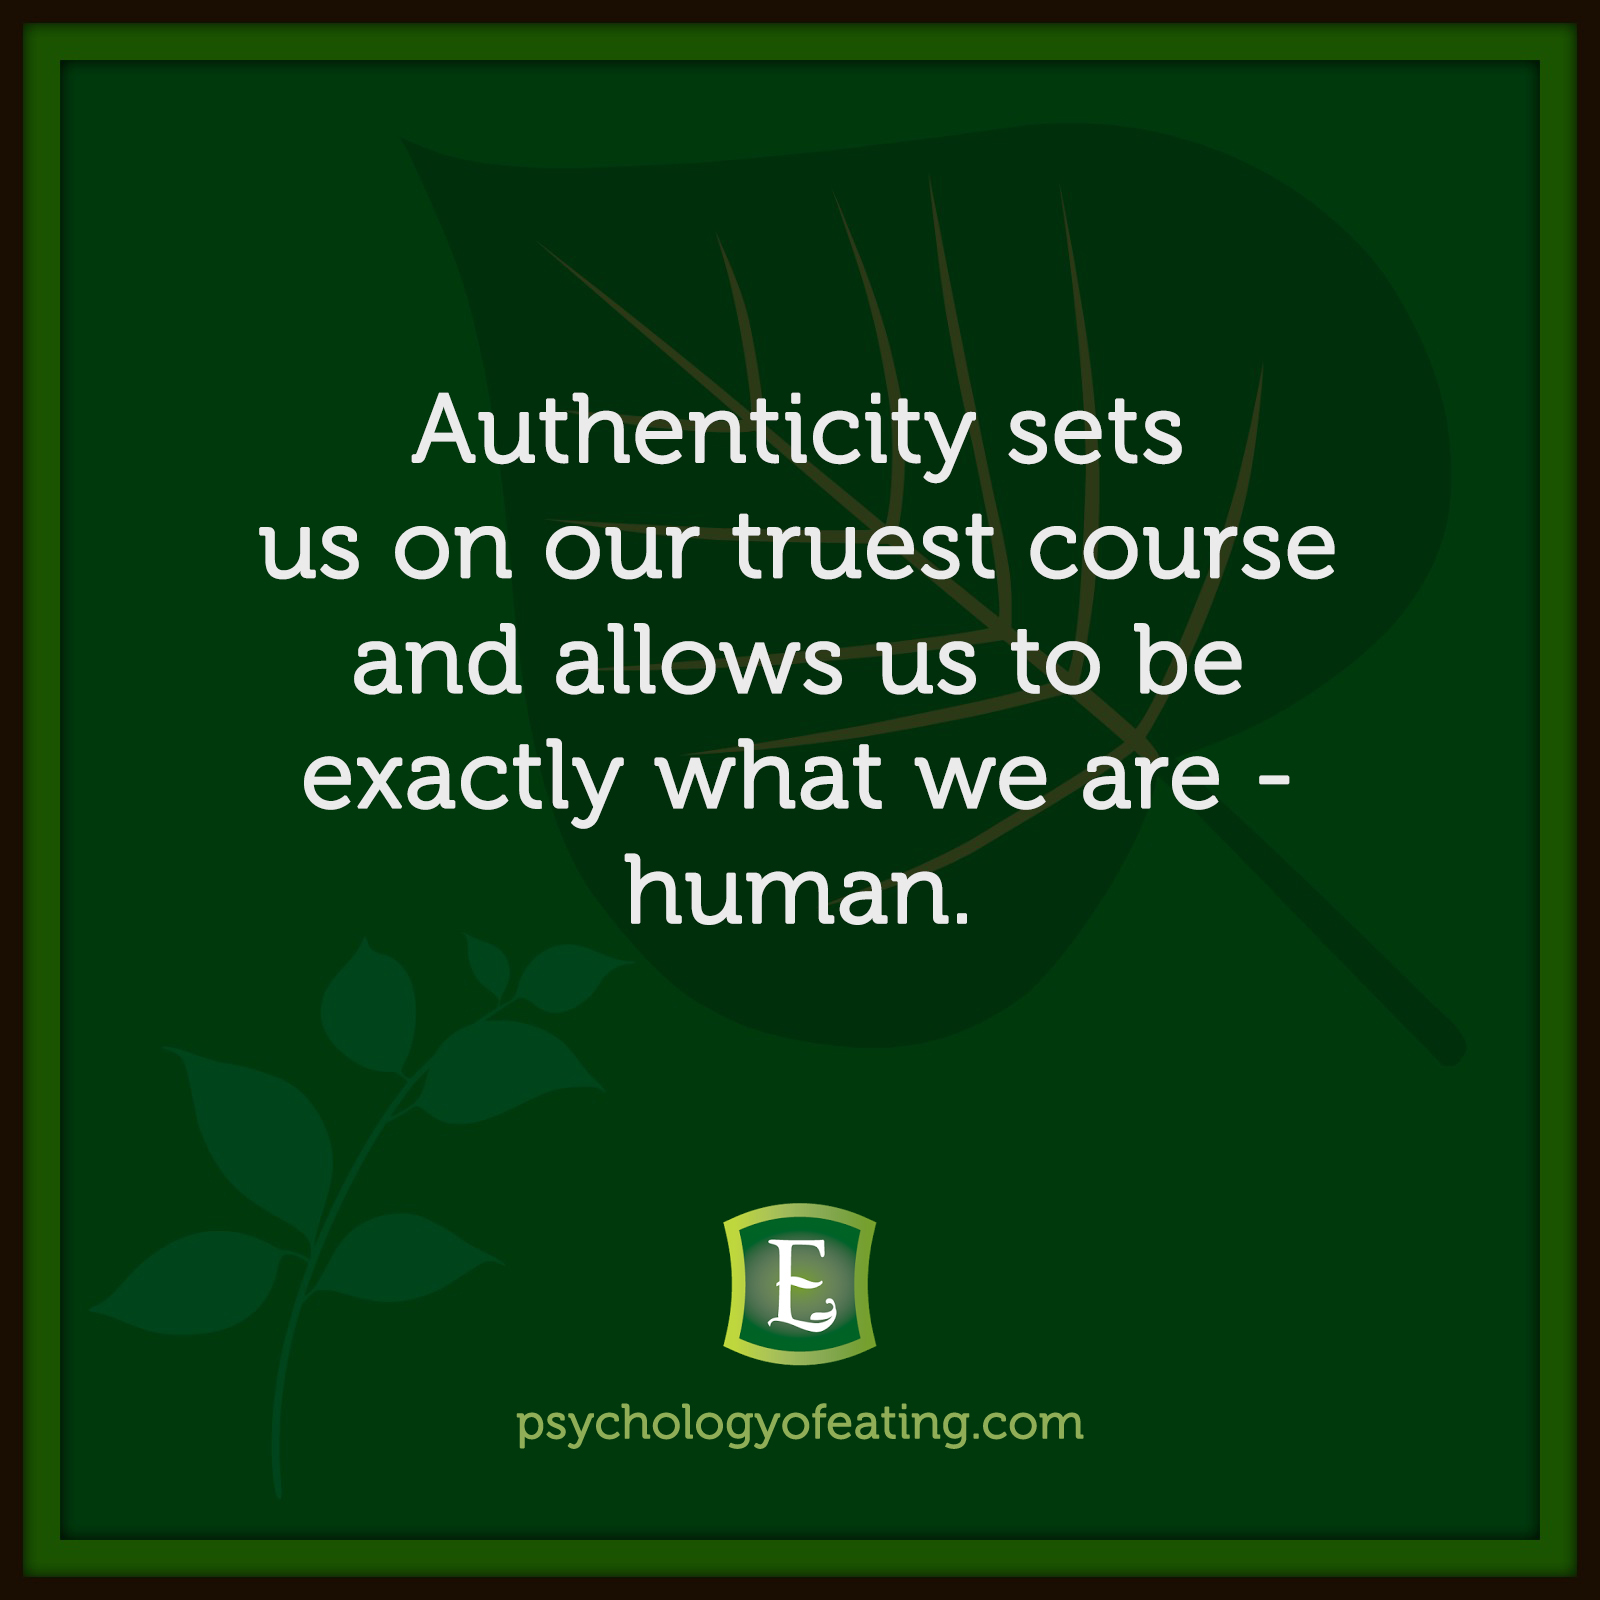 Authenticity sets us on our truest course and allows us to be exactly what we are - human. #health #nutrition #eatingpsychology #IPE